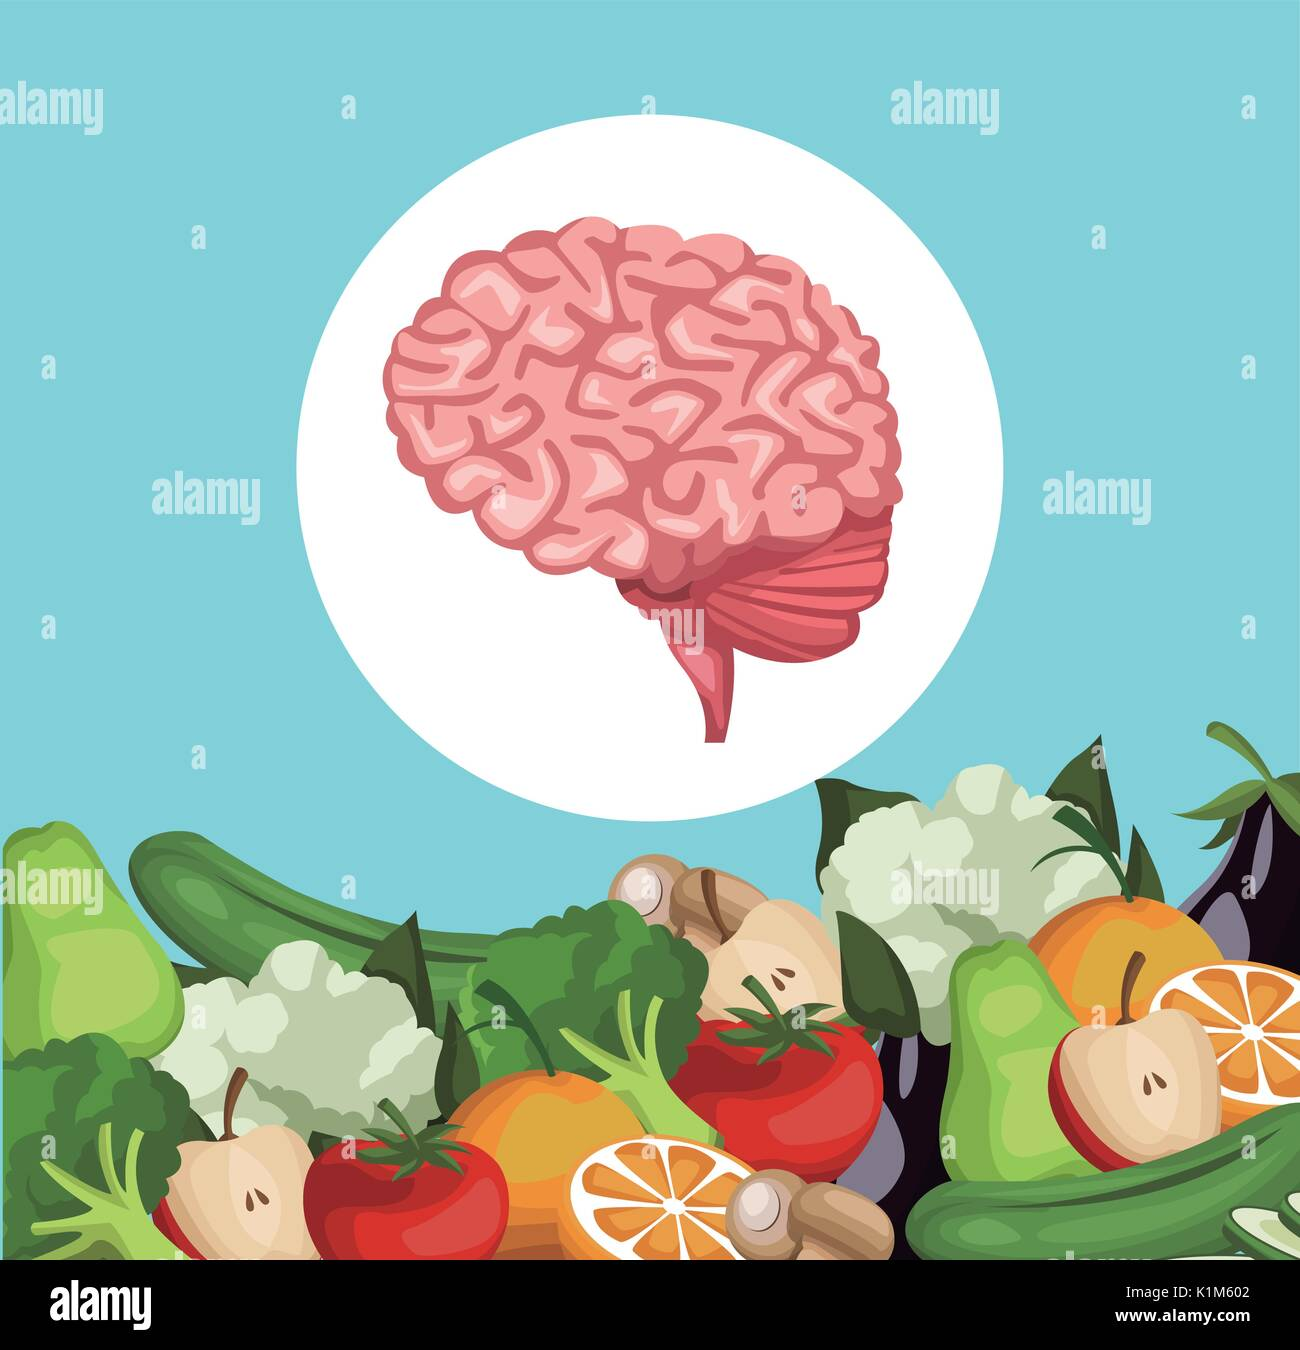 color background with border vegetables and fruits healthy food to brain organ - Stock Image